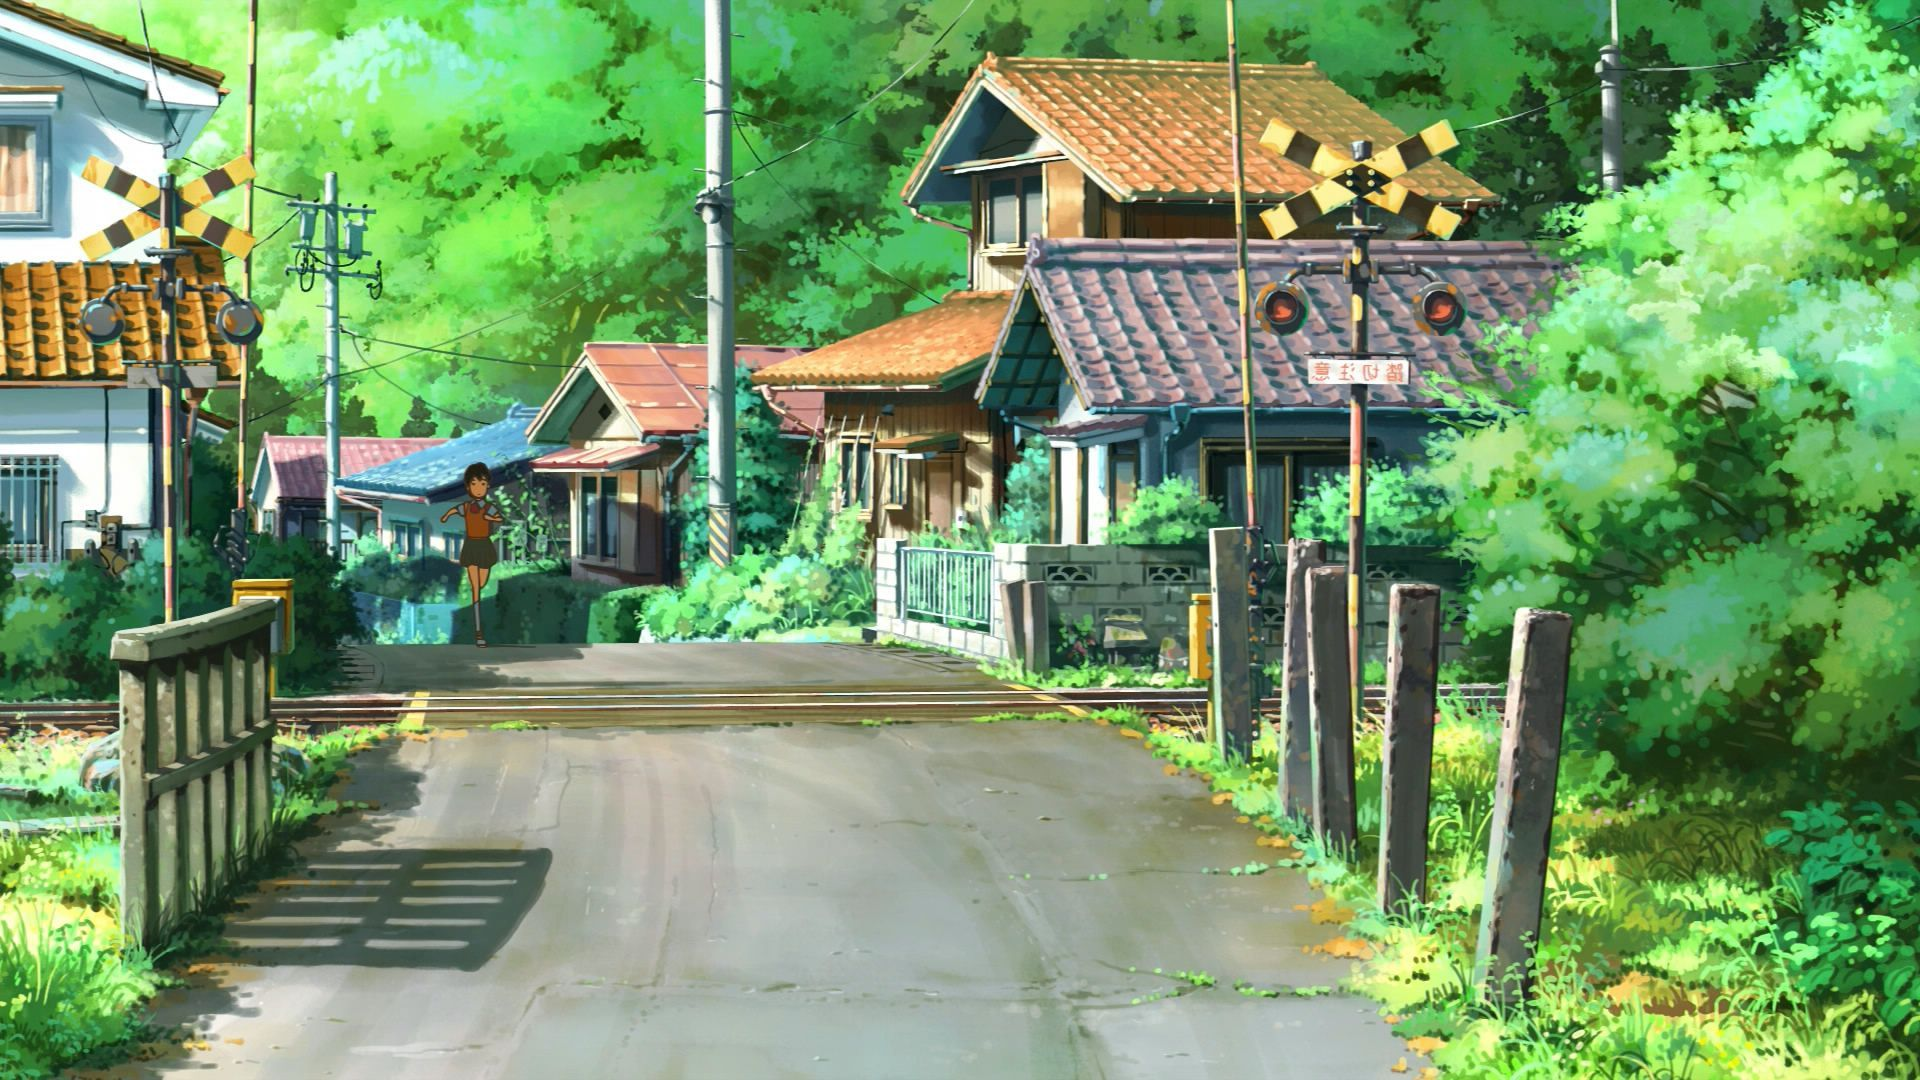 Village Anime Scenery Wallpaper Free Desktop  Wallpaper